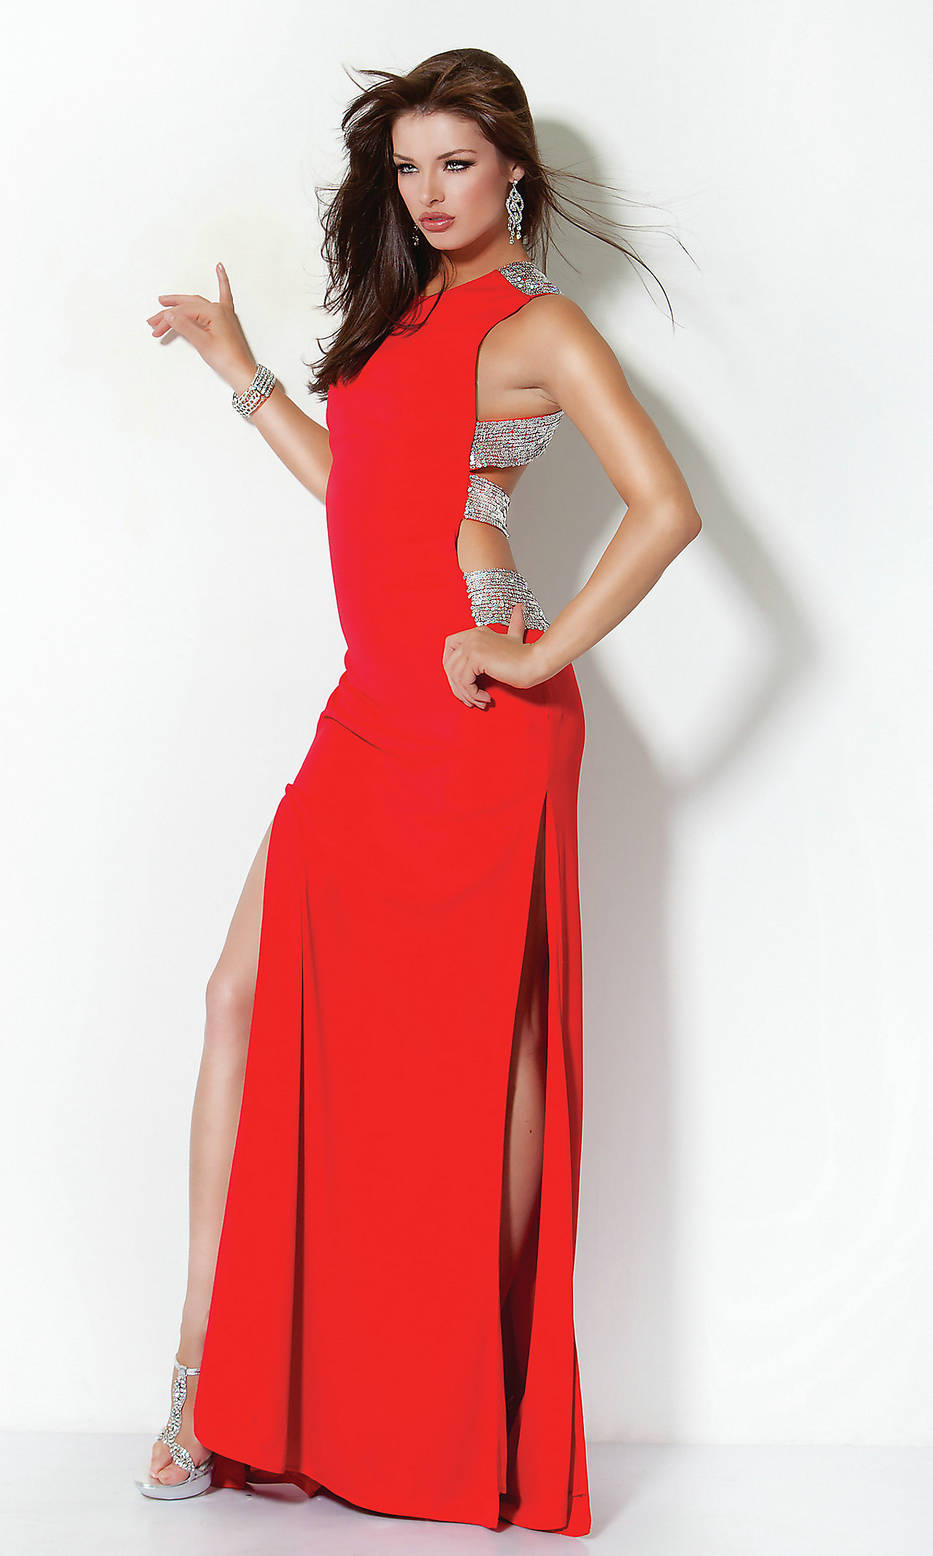 Red Dresses: Your Sexiest Option For All Occasions | Navy ...Red Dresses